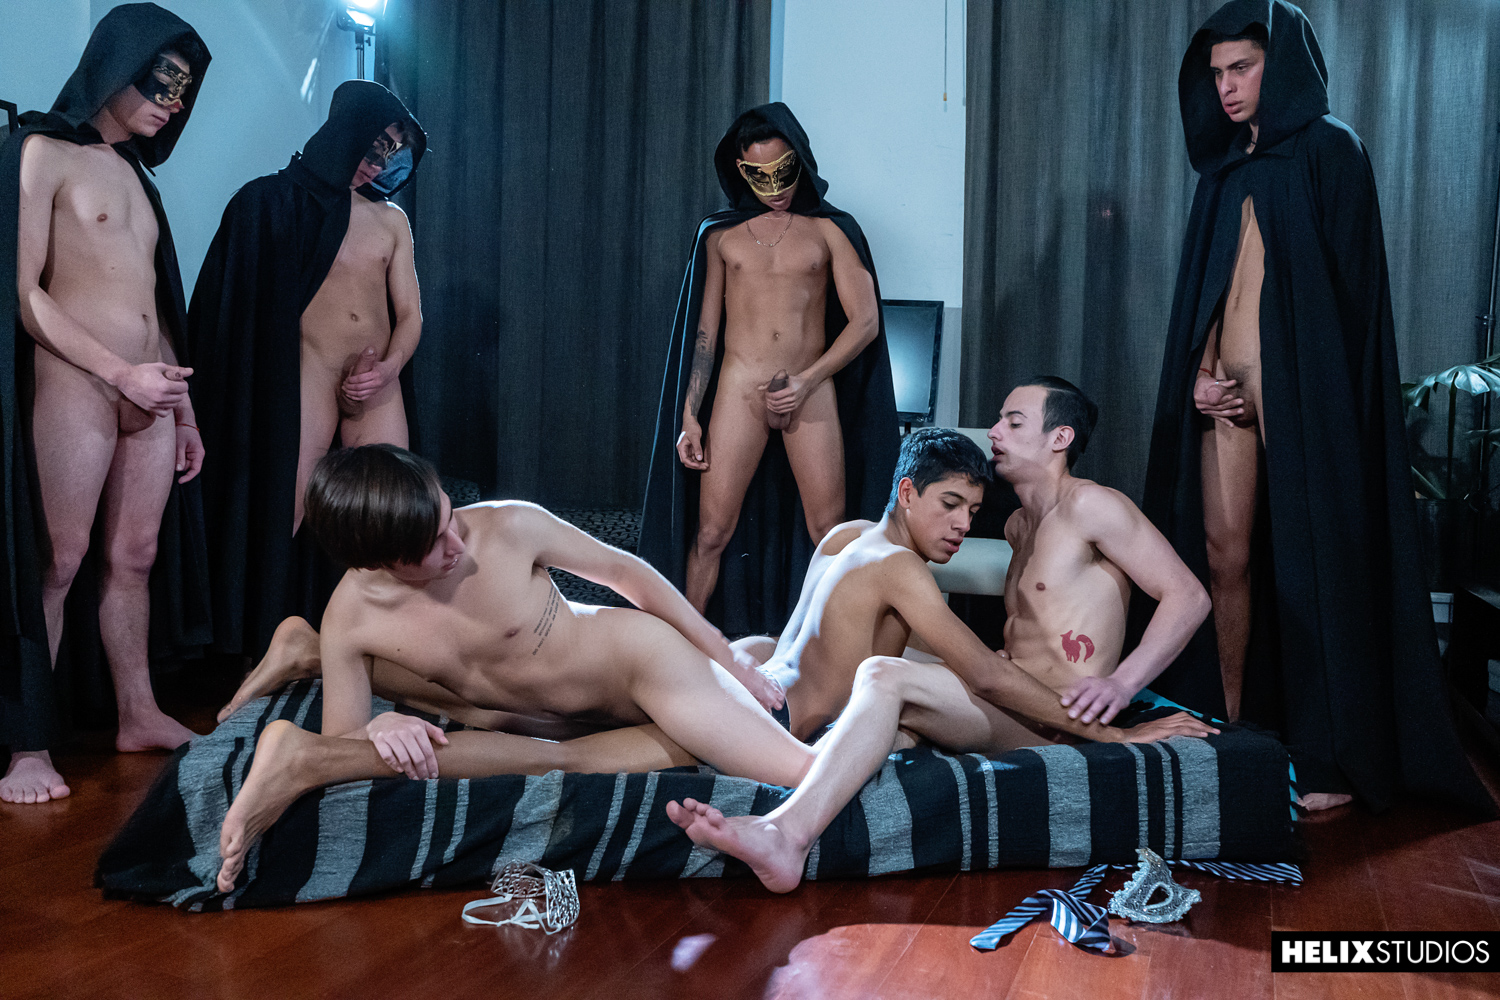 Brotherhood Sessions: Part One, I Wanna Be A Brother – Dave Andrew, Sly Conan, Aubin Durand and El Maestre